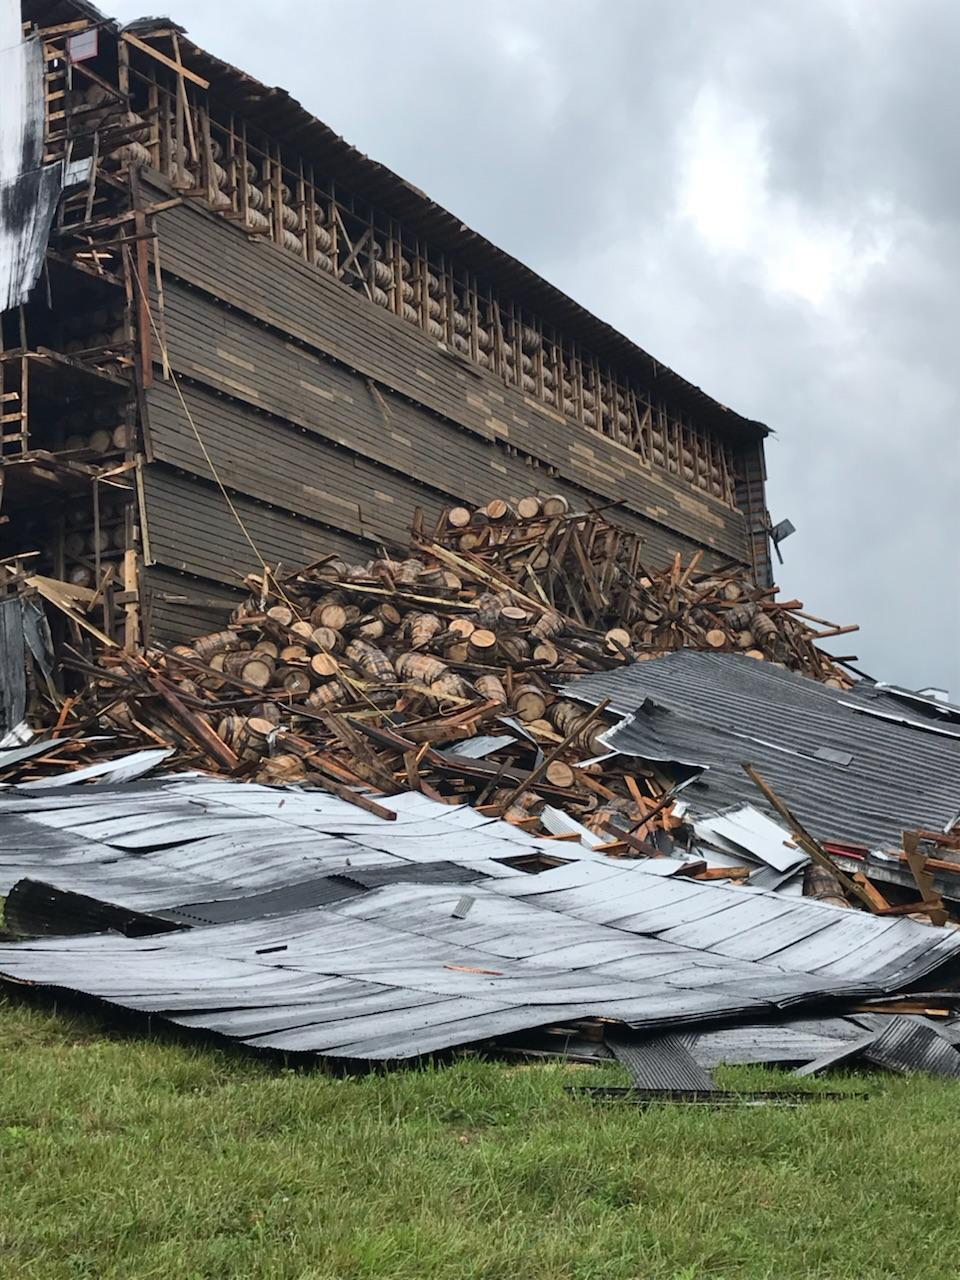 Up to 9K Whiskey Barrels Just Crashed to the Ground in Ky.